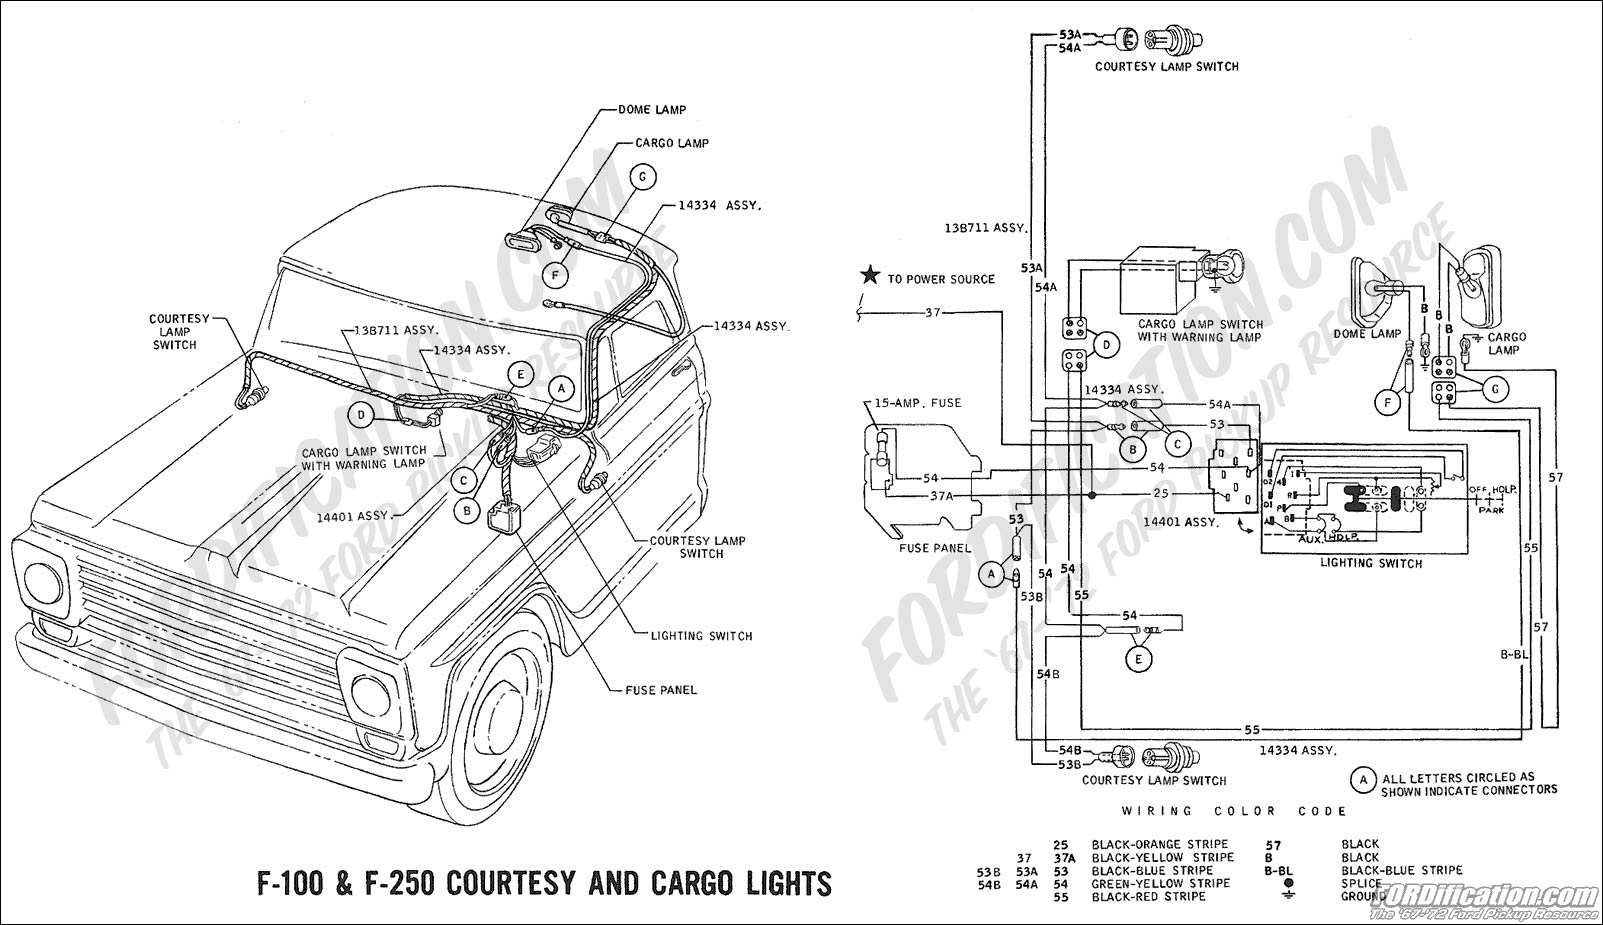 1971 Cadillac Headlights Wiring Daily Update Diagram Atv Schematic Hondatz400es El Dorado Headlight Harness Get Free